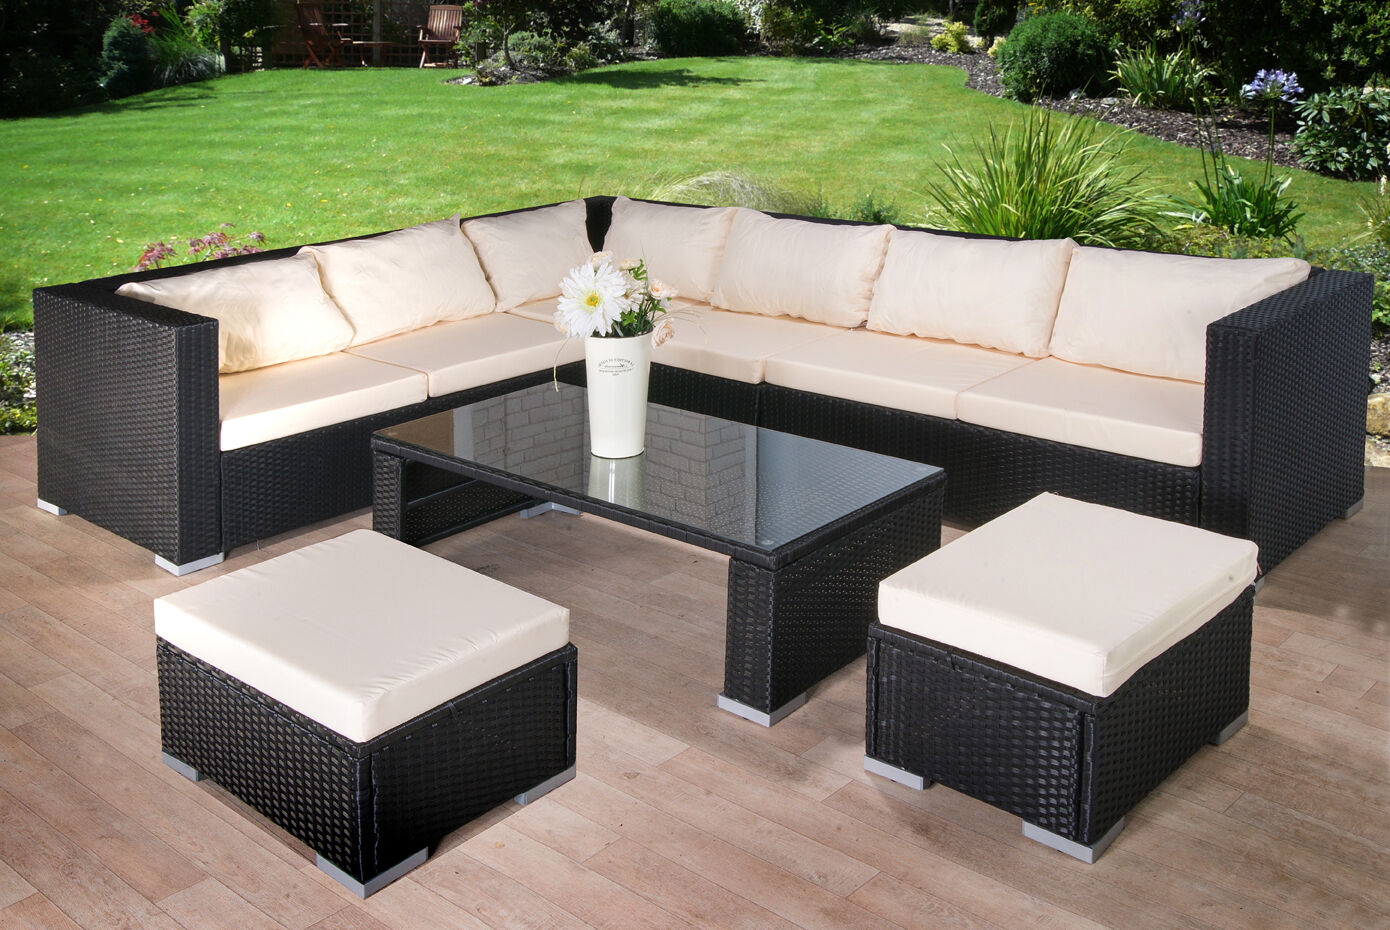 Modern rattan garden furniture sofa set lounger 8 seater for Modern garden furniture